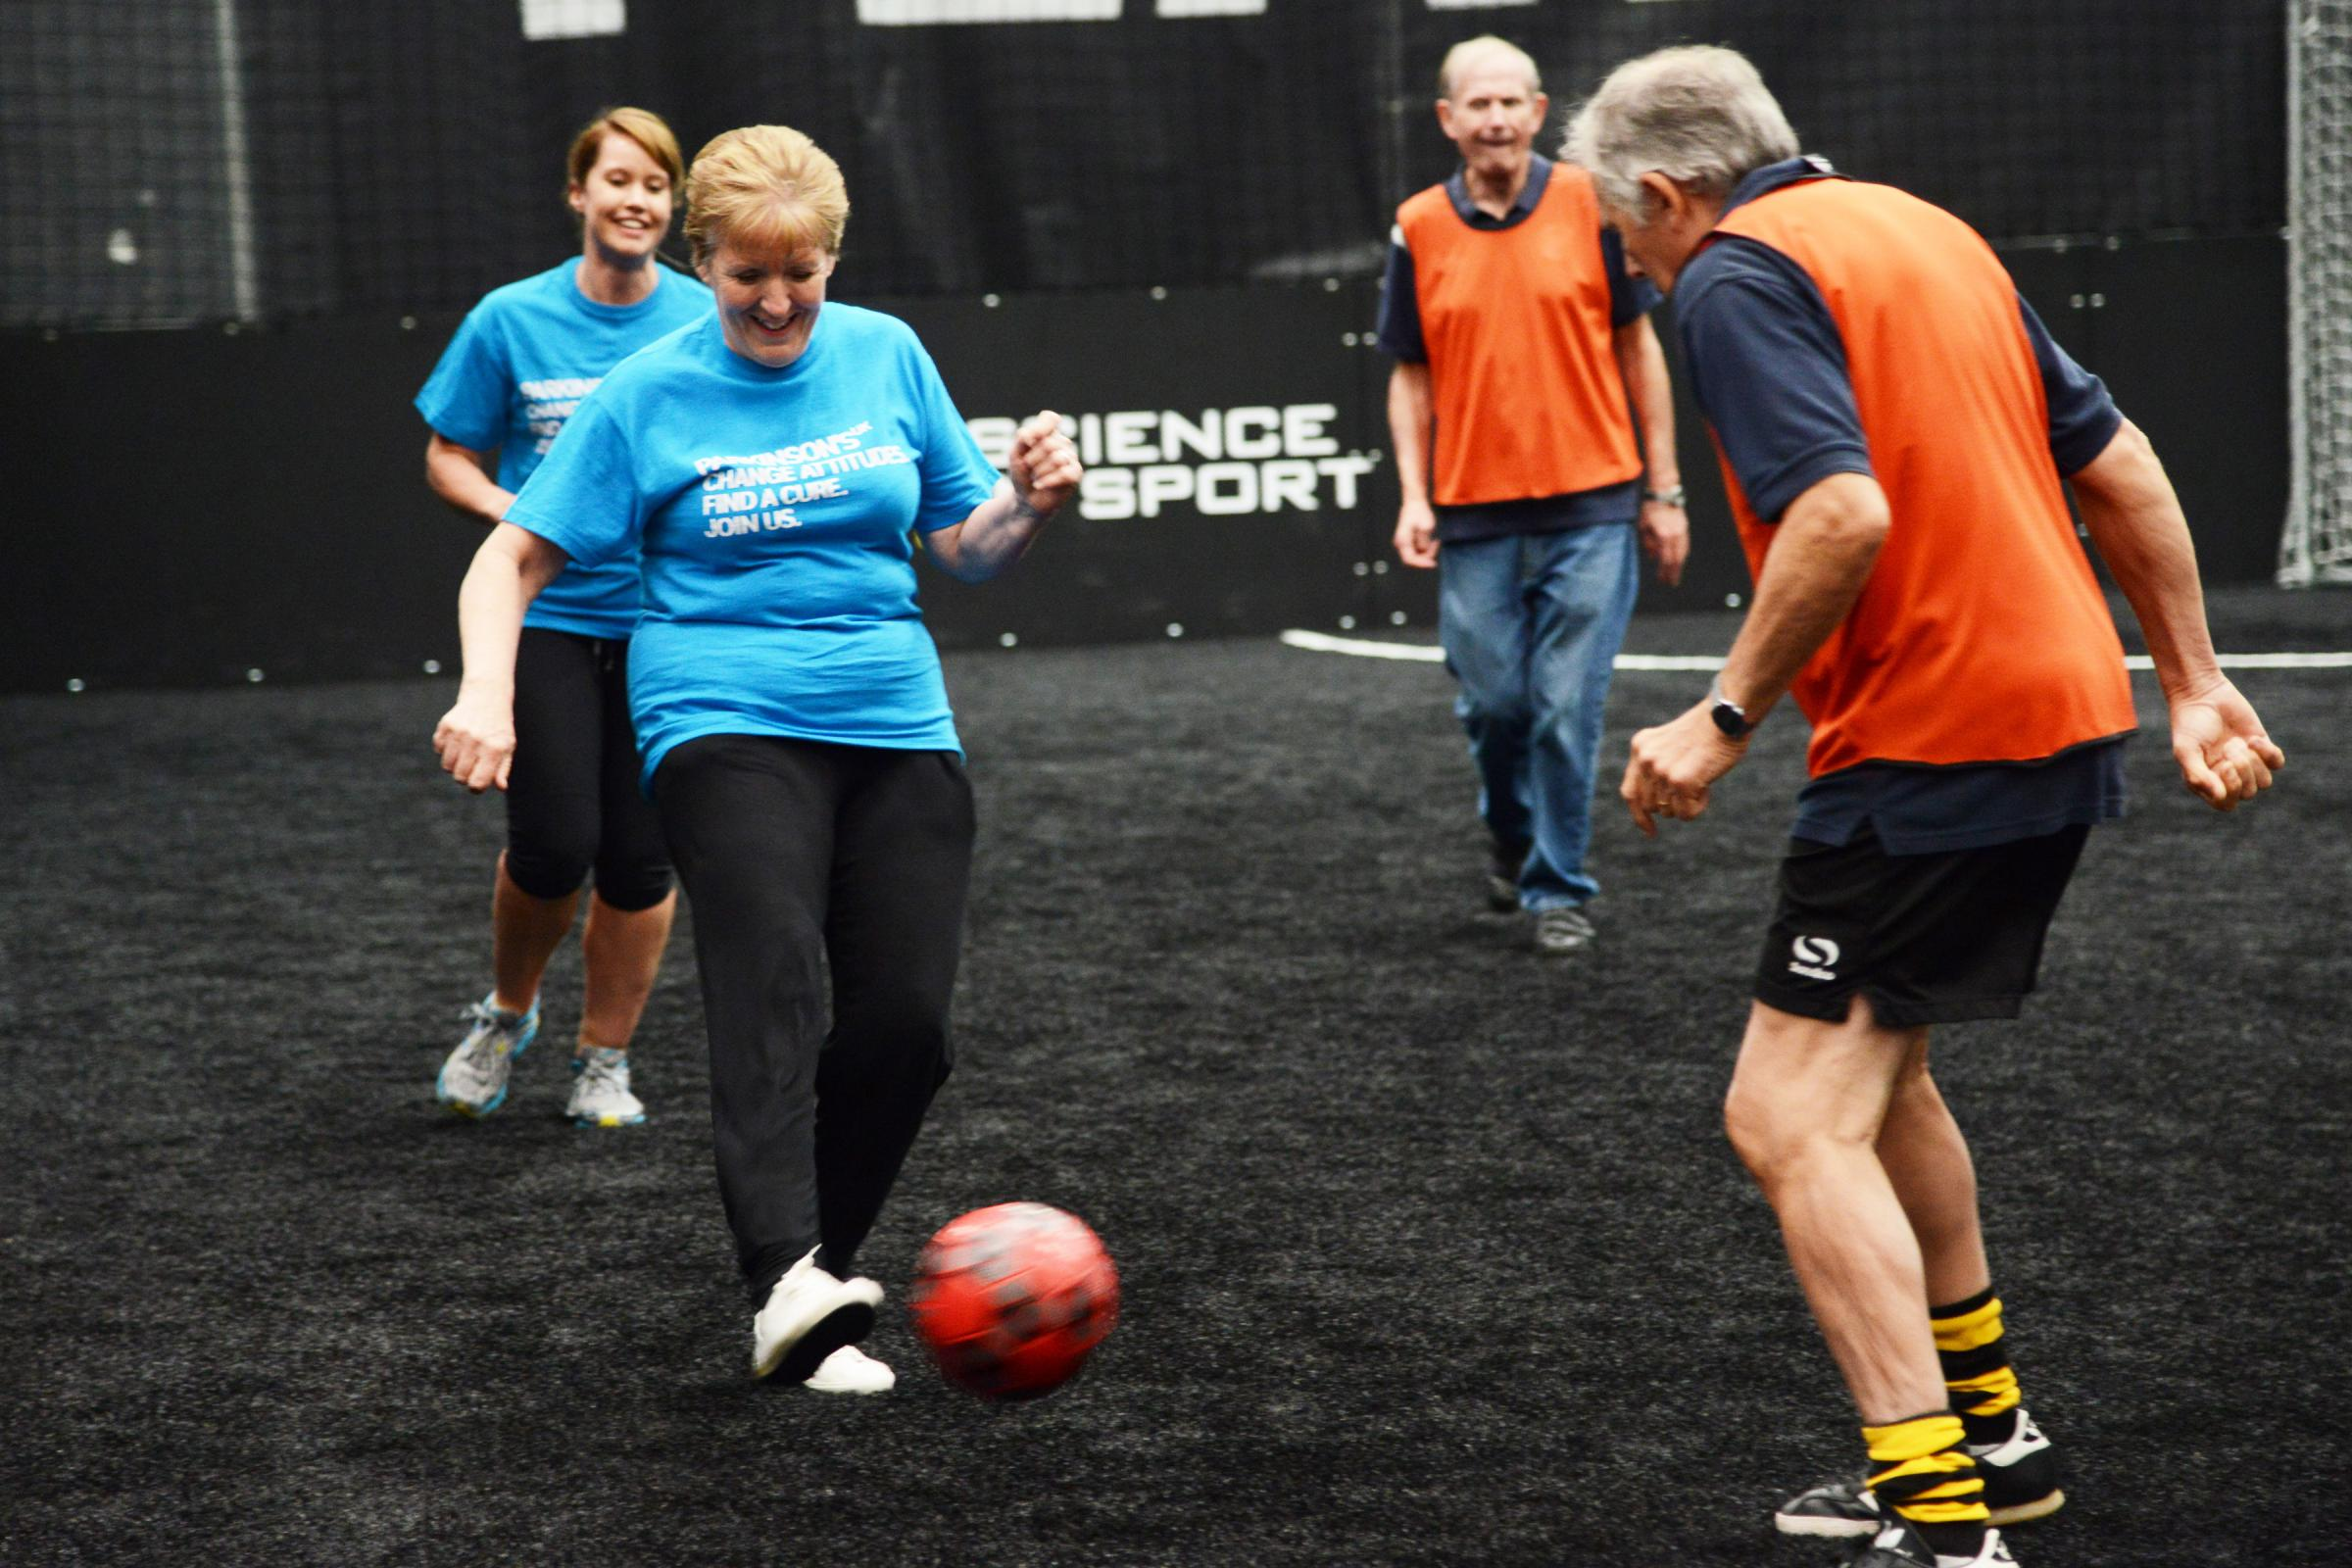 Lesley Keen takes on the opposition at Parkinson's UK's football clash. Picture: THOMAS KELSEY